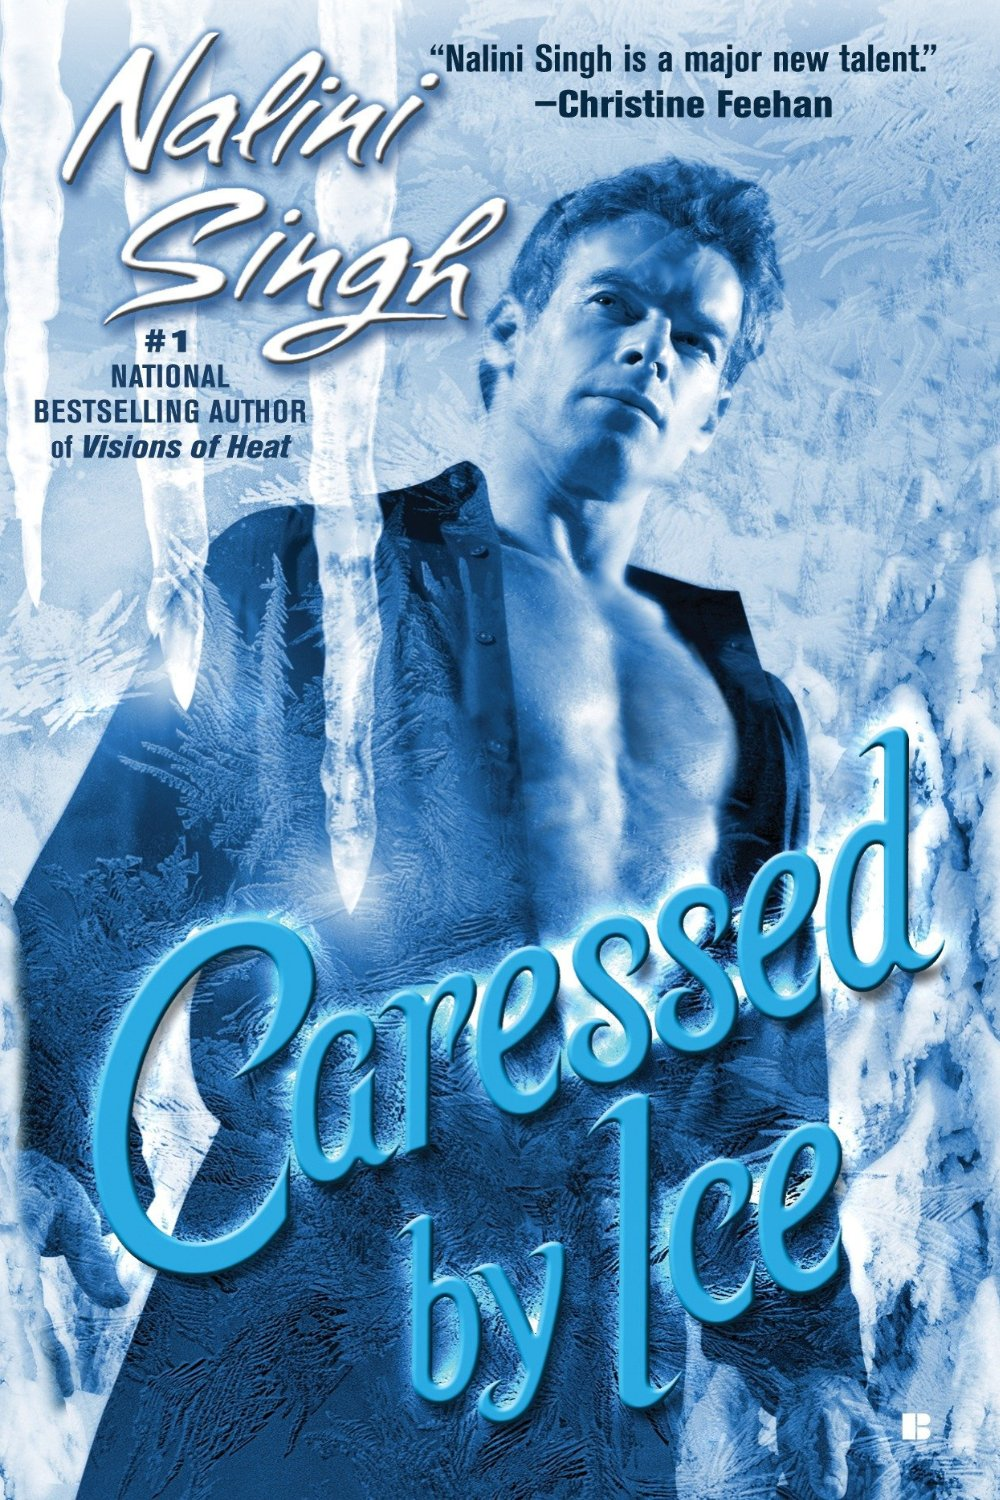 S2 E8 Caressed by Ice by Nalini Singh